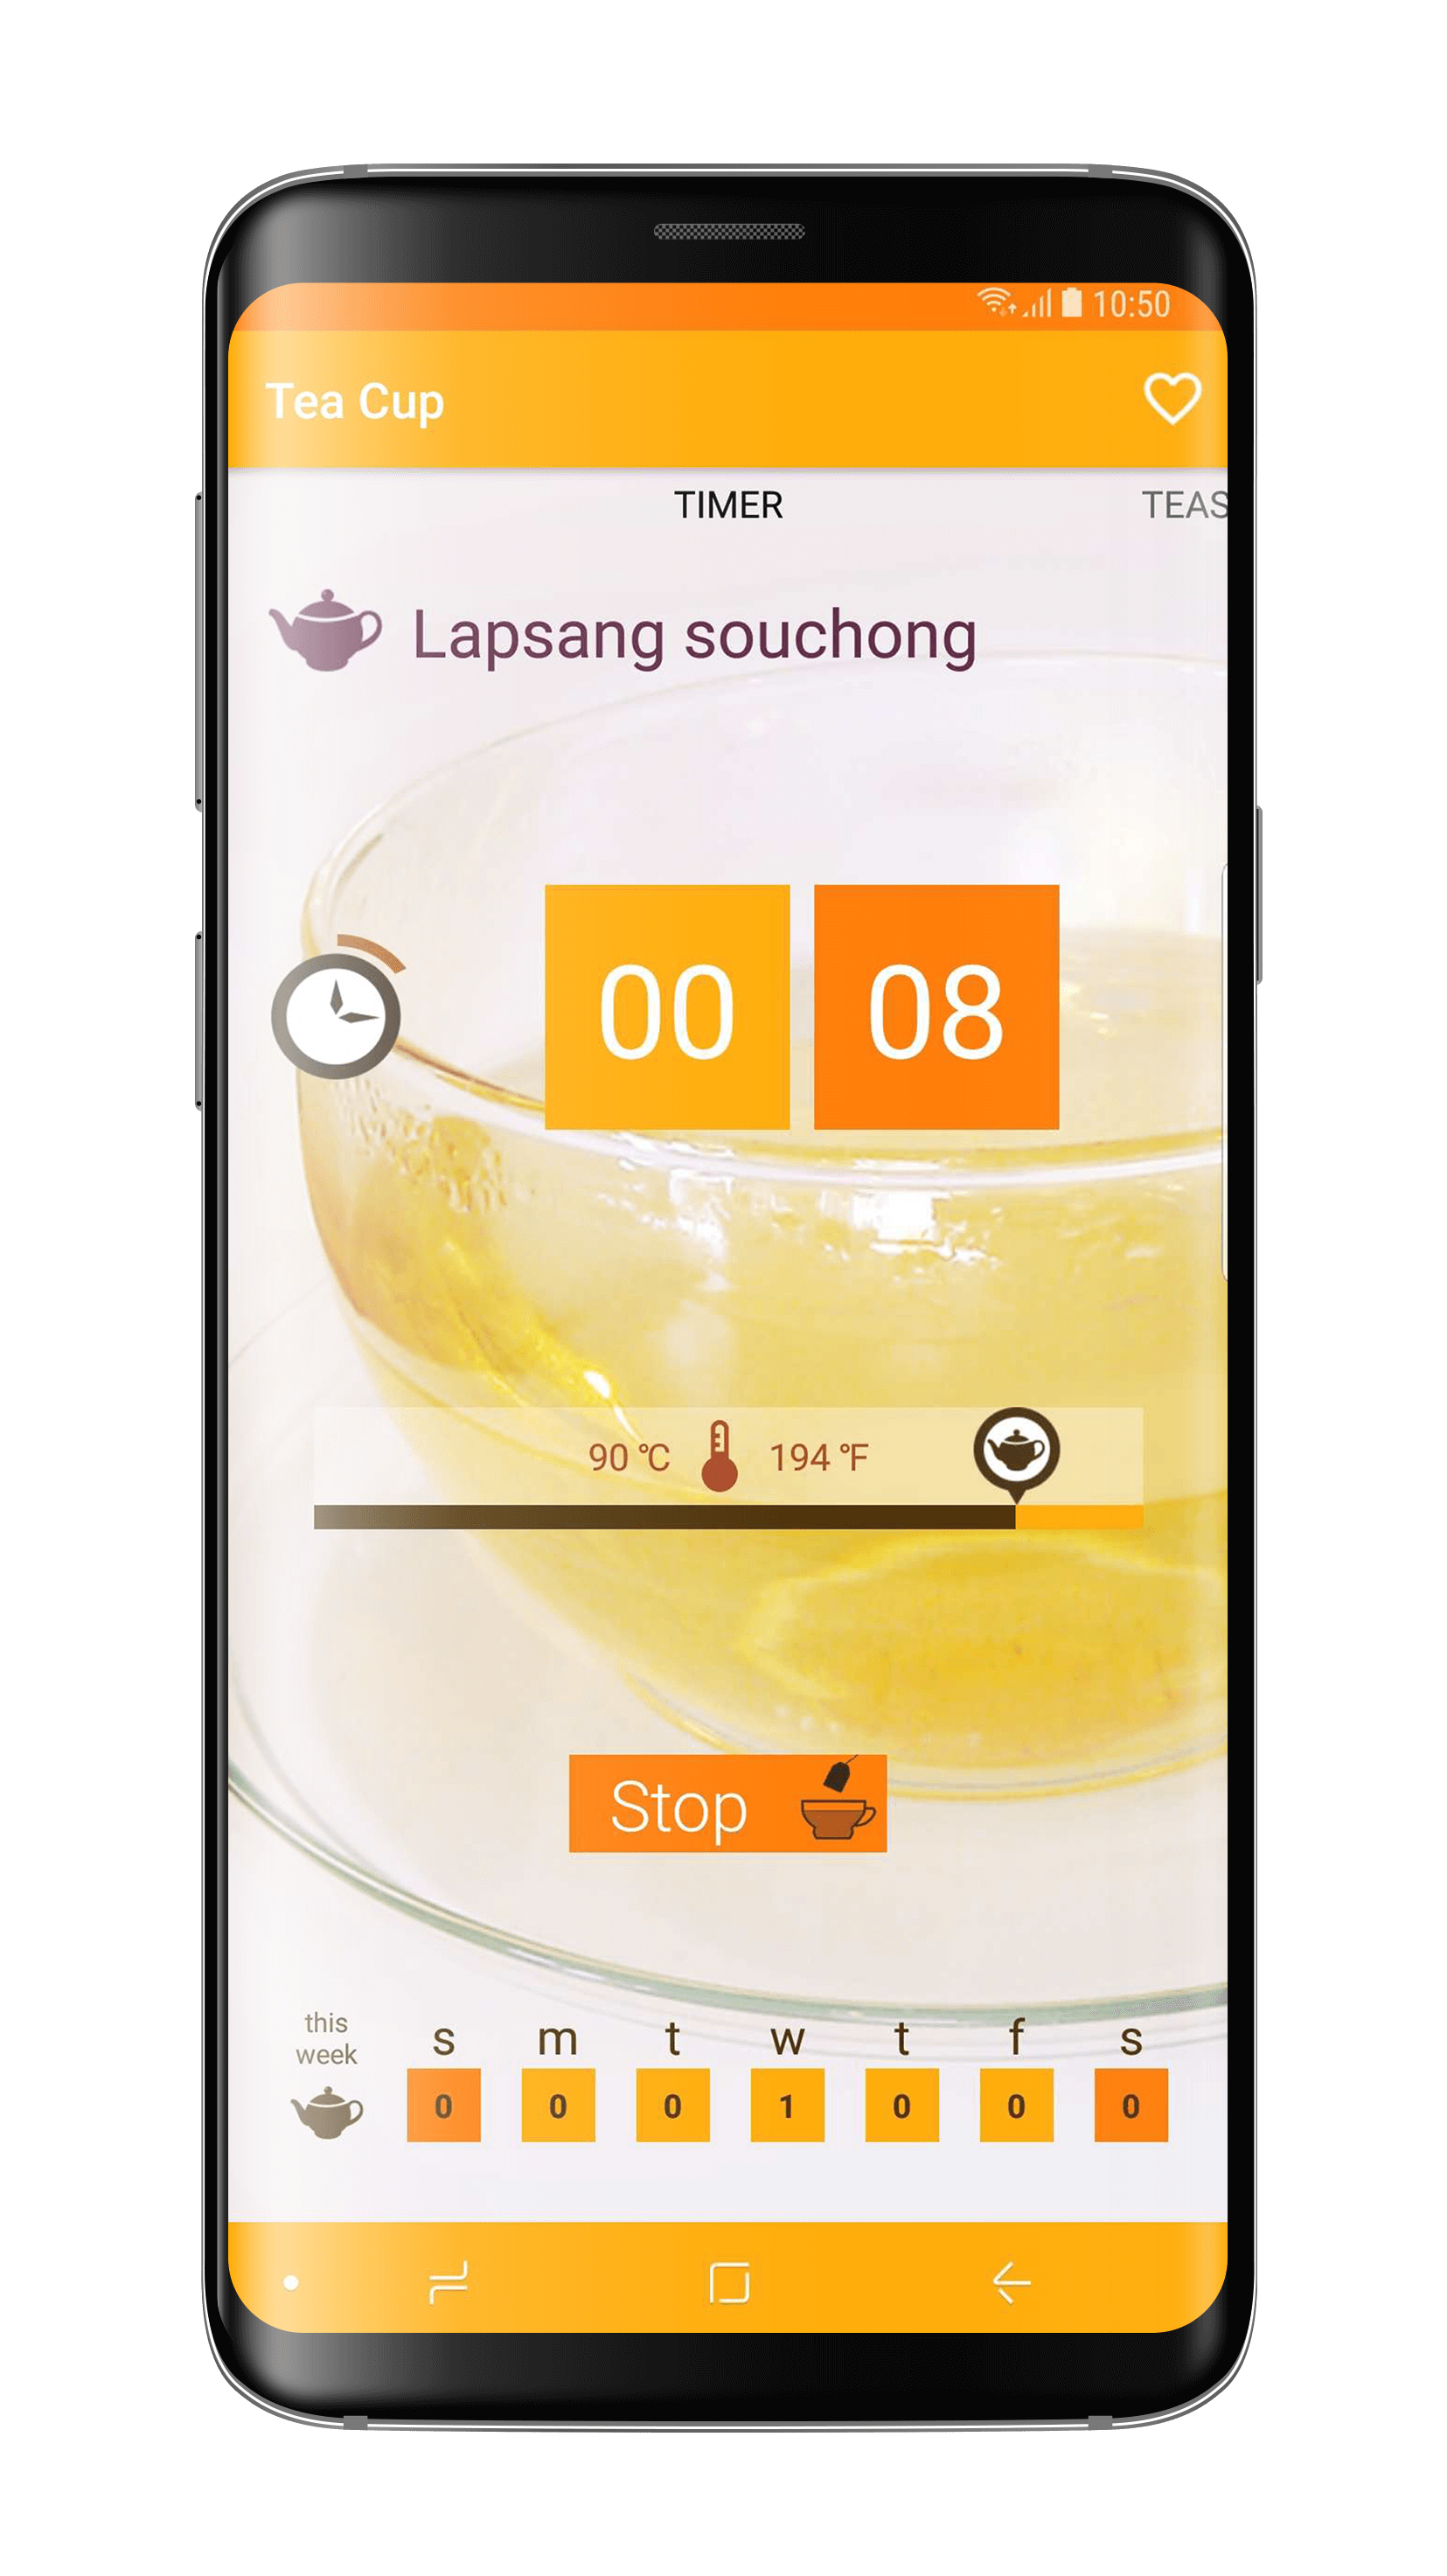 TeaCup - Beautidul and easy to use tea timer app